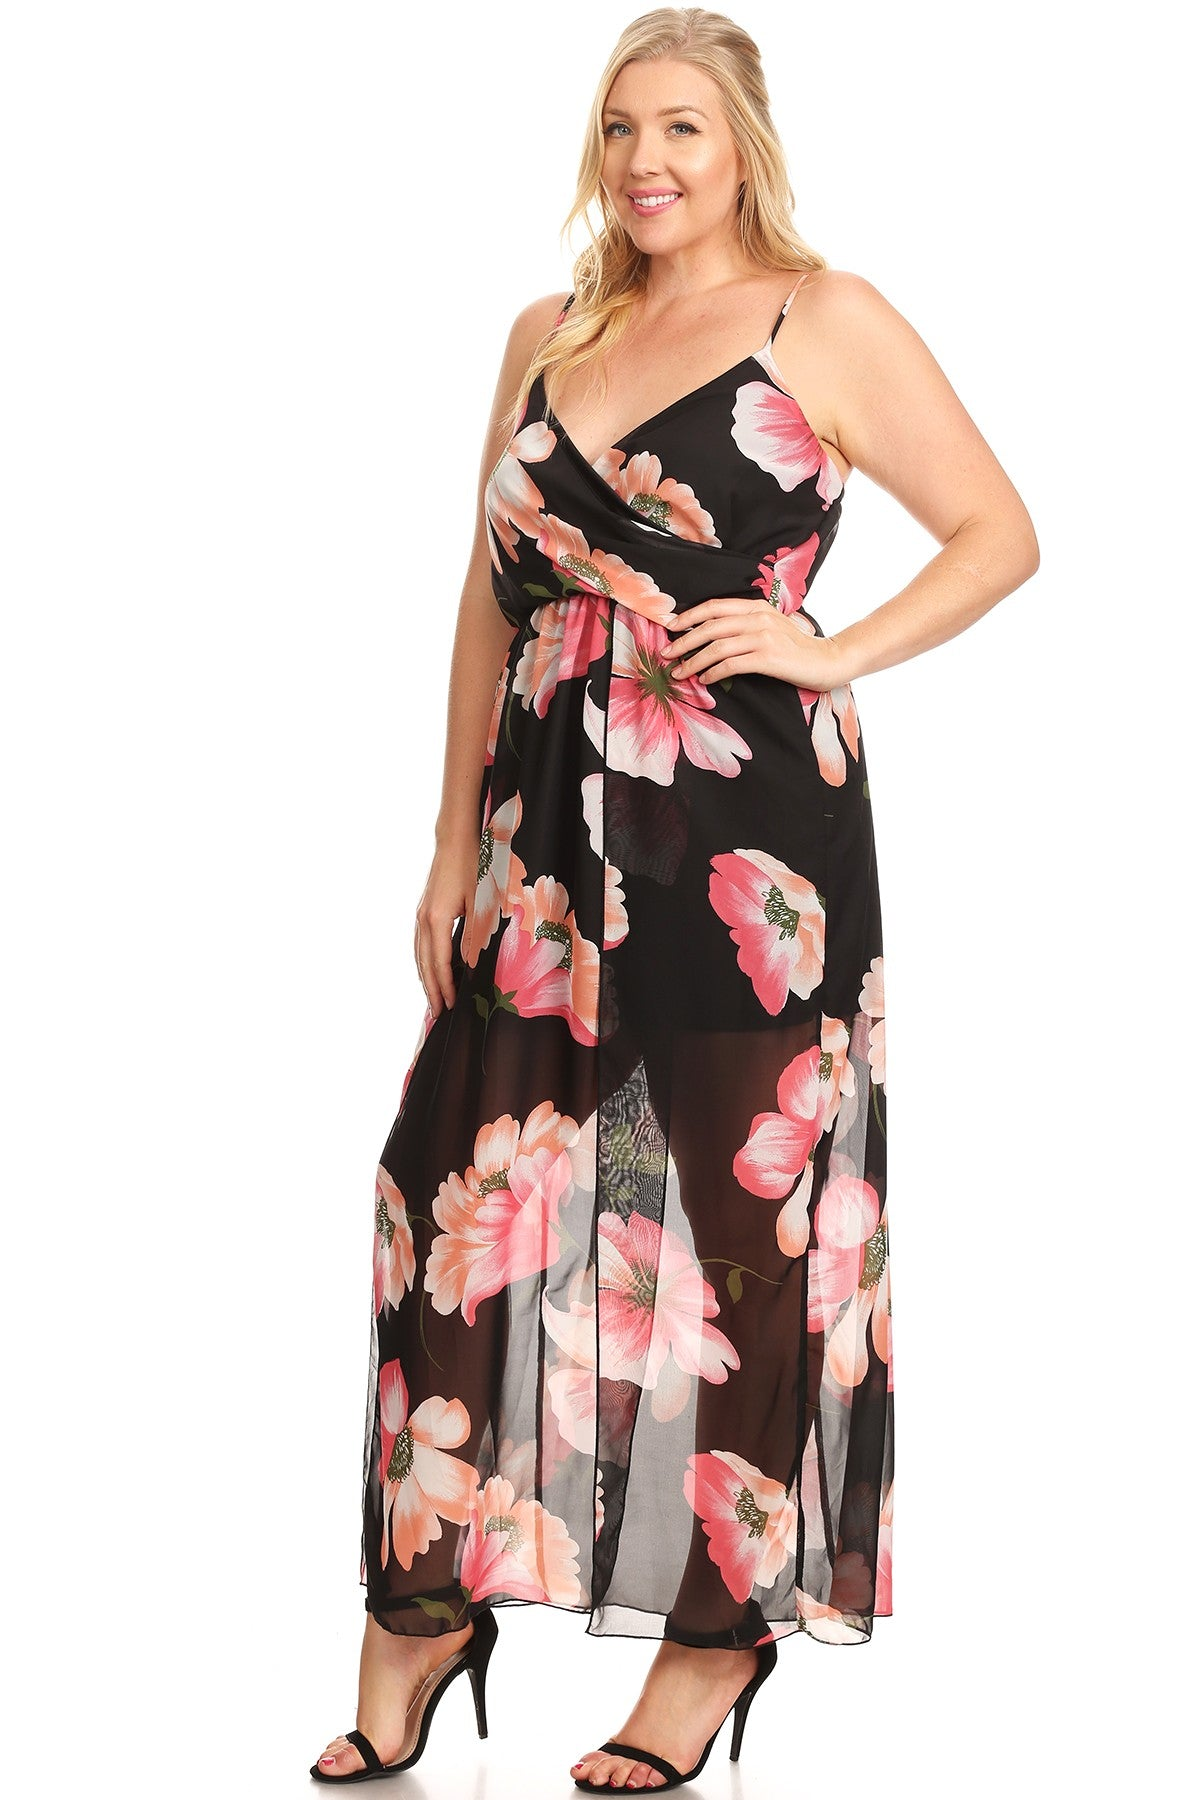 Lilian Loose Fit Sleeveless Floral A-Line Maxi Dress